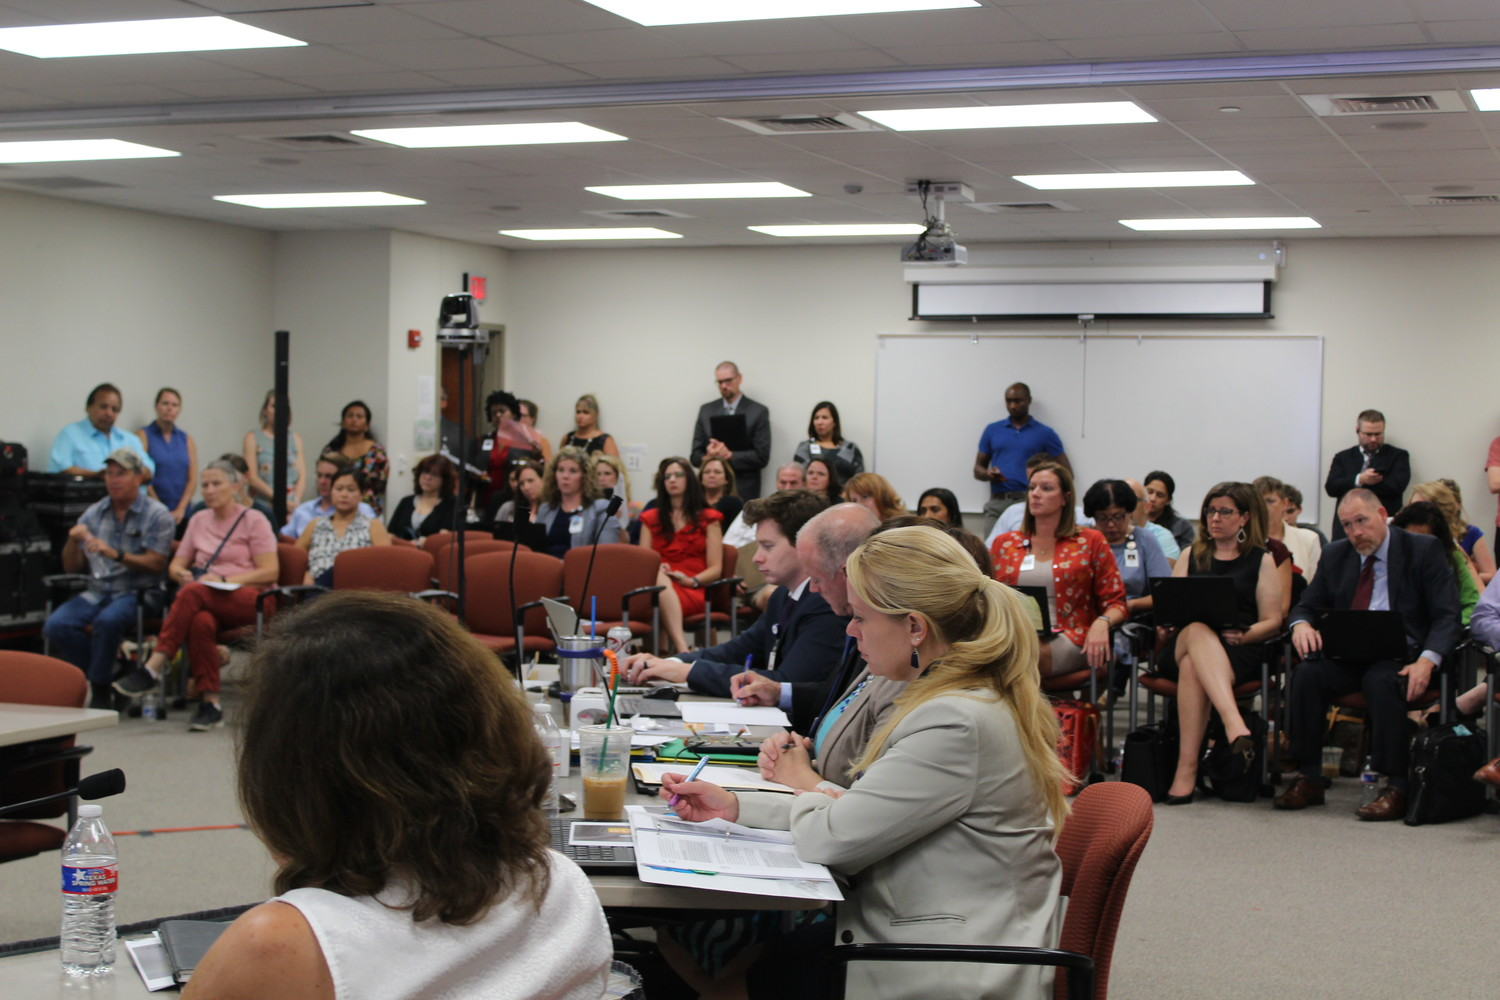 A crowd of LISD parents concerned about hot buses filled the meeting room at the Leander ISD Support Services building for the Aug. 23 school board meeting.